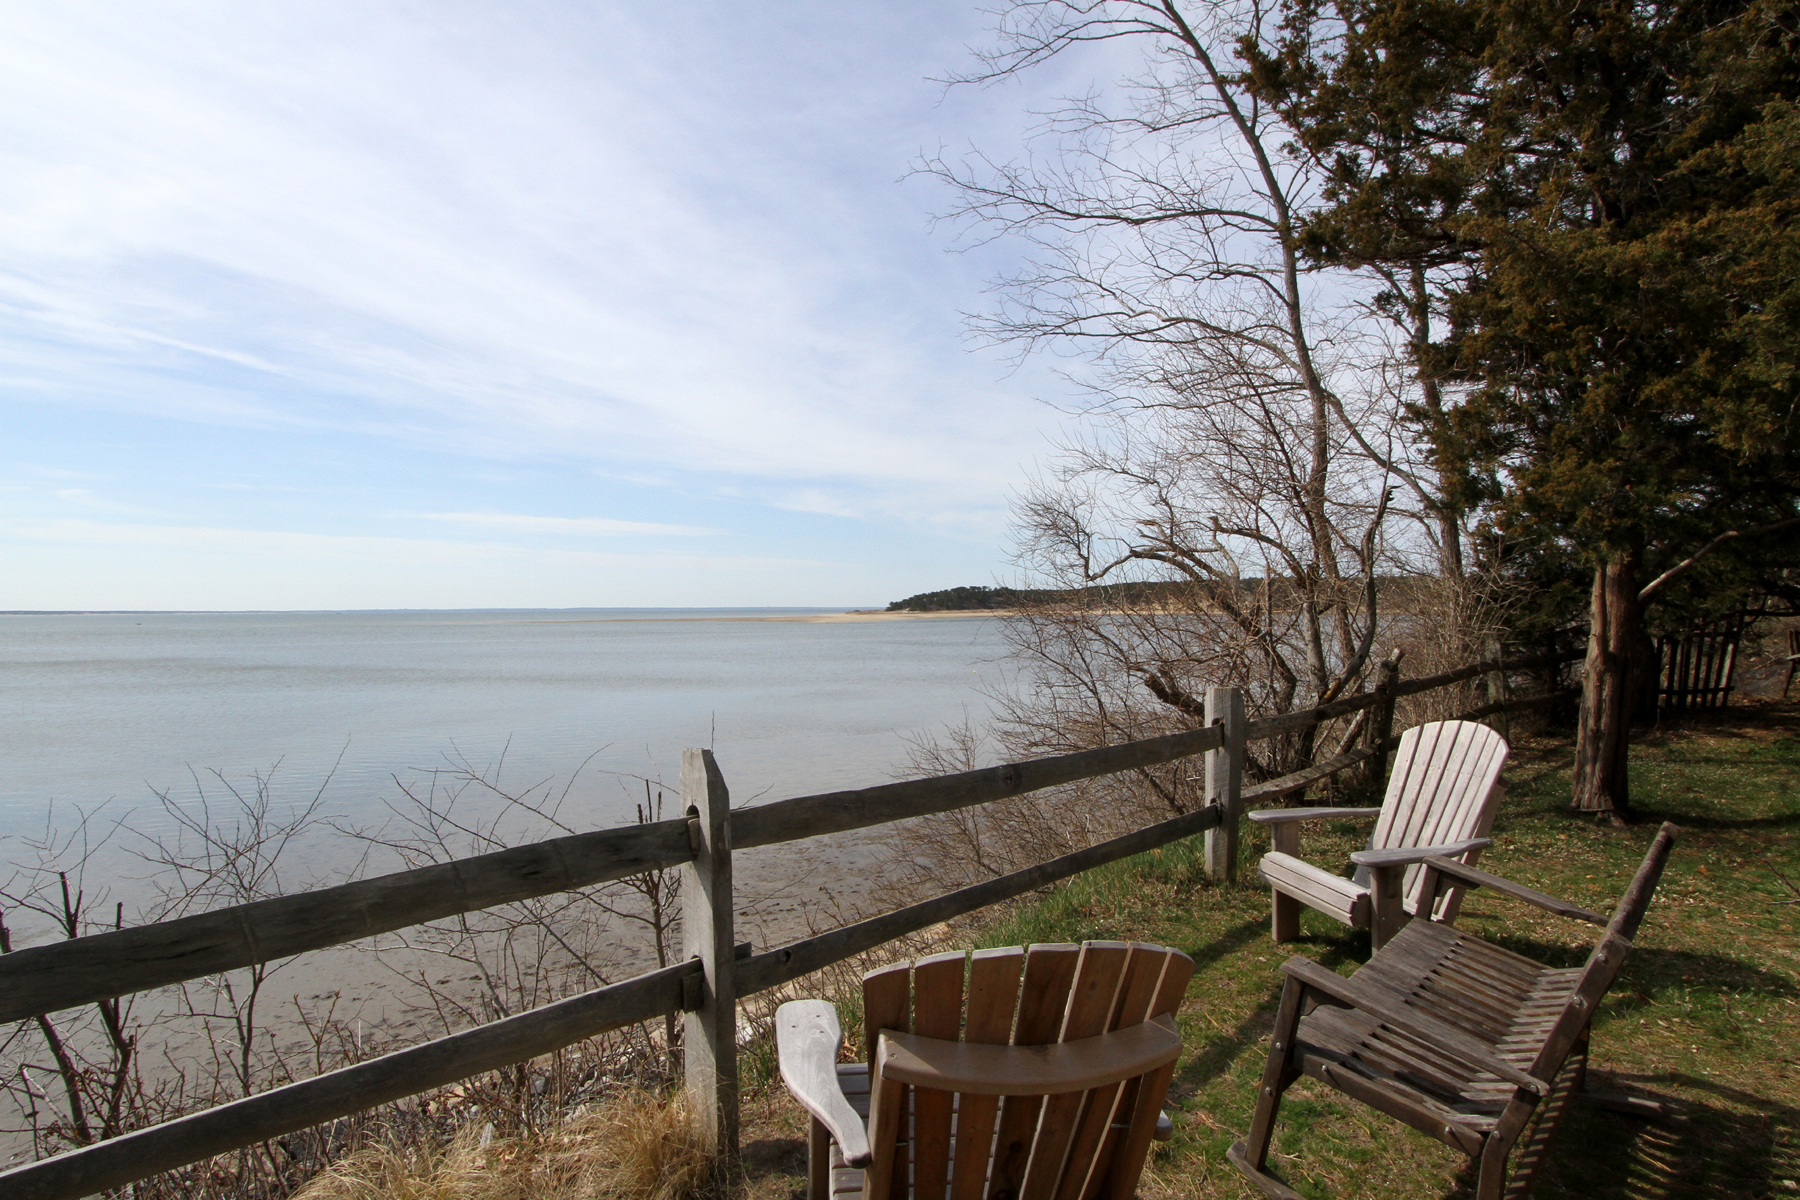 Single Family Home for Sale at 715 Chequessett Neck Road, Wellfleet, MA Wellfleet, Massachusetts 02667 United States